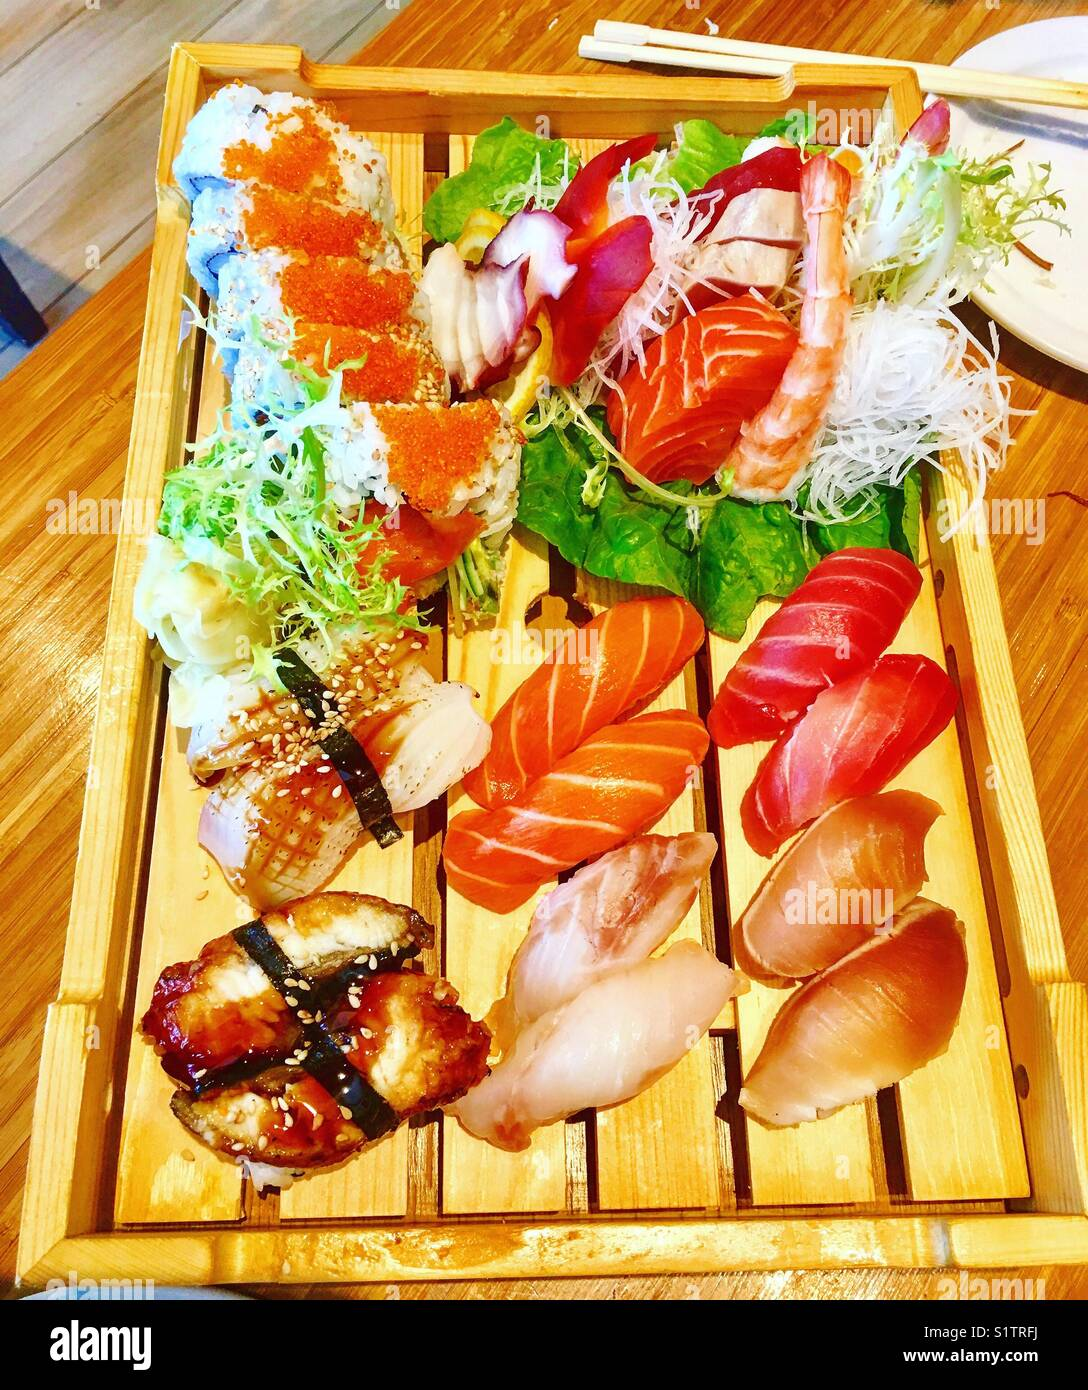 undecided which sushi to eat next with all these tasty goodness right in front of me - Stock Image